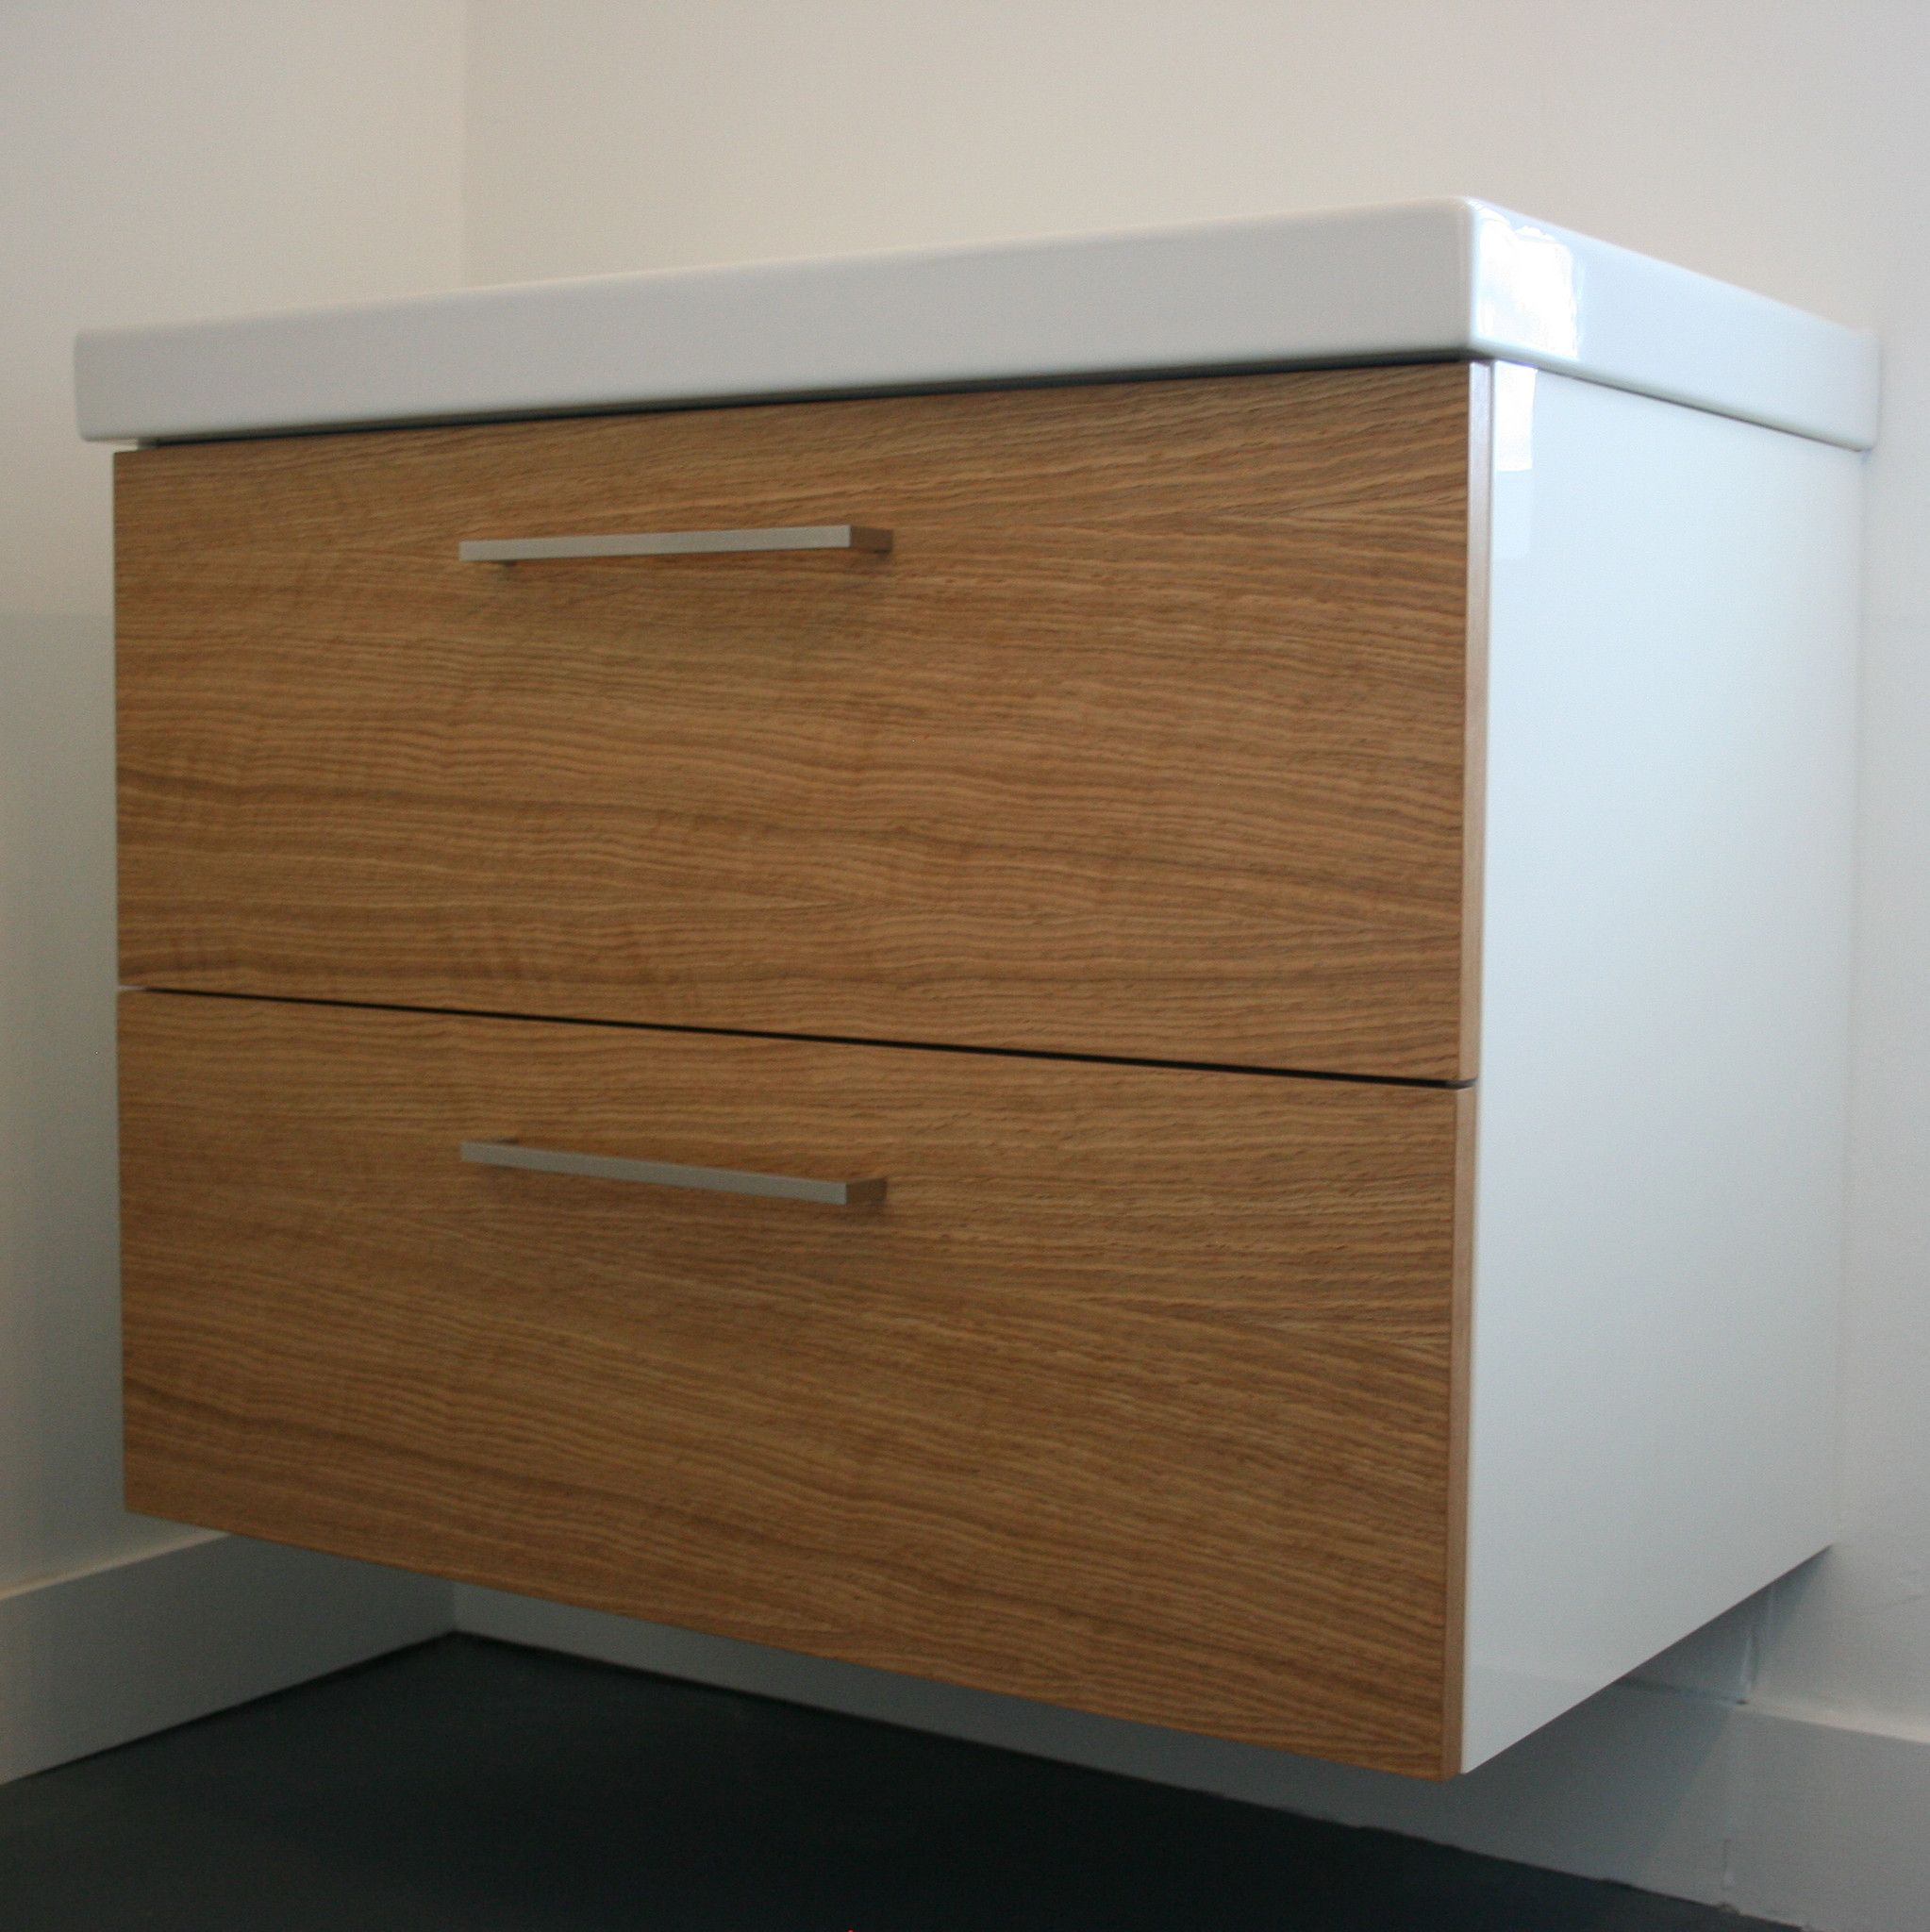 Oak godmorgon custom fronts for ikea cabinets b a t h r o o m s oak godmorgon custom fronts for ikea cabinets eventshaper